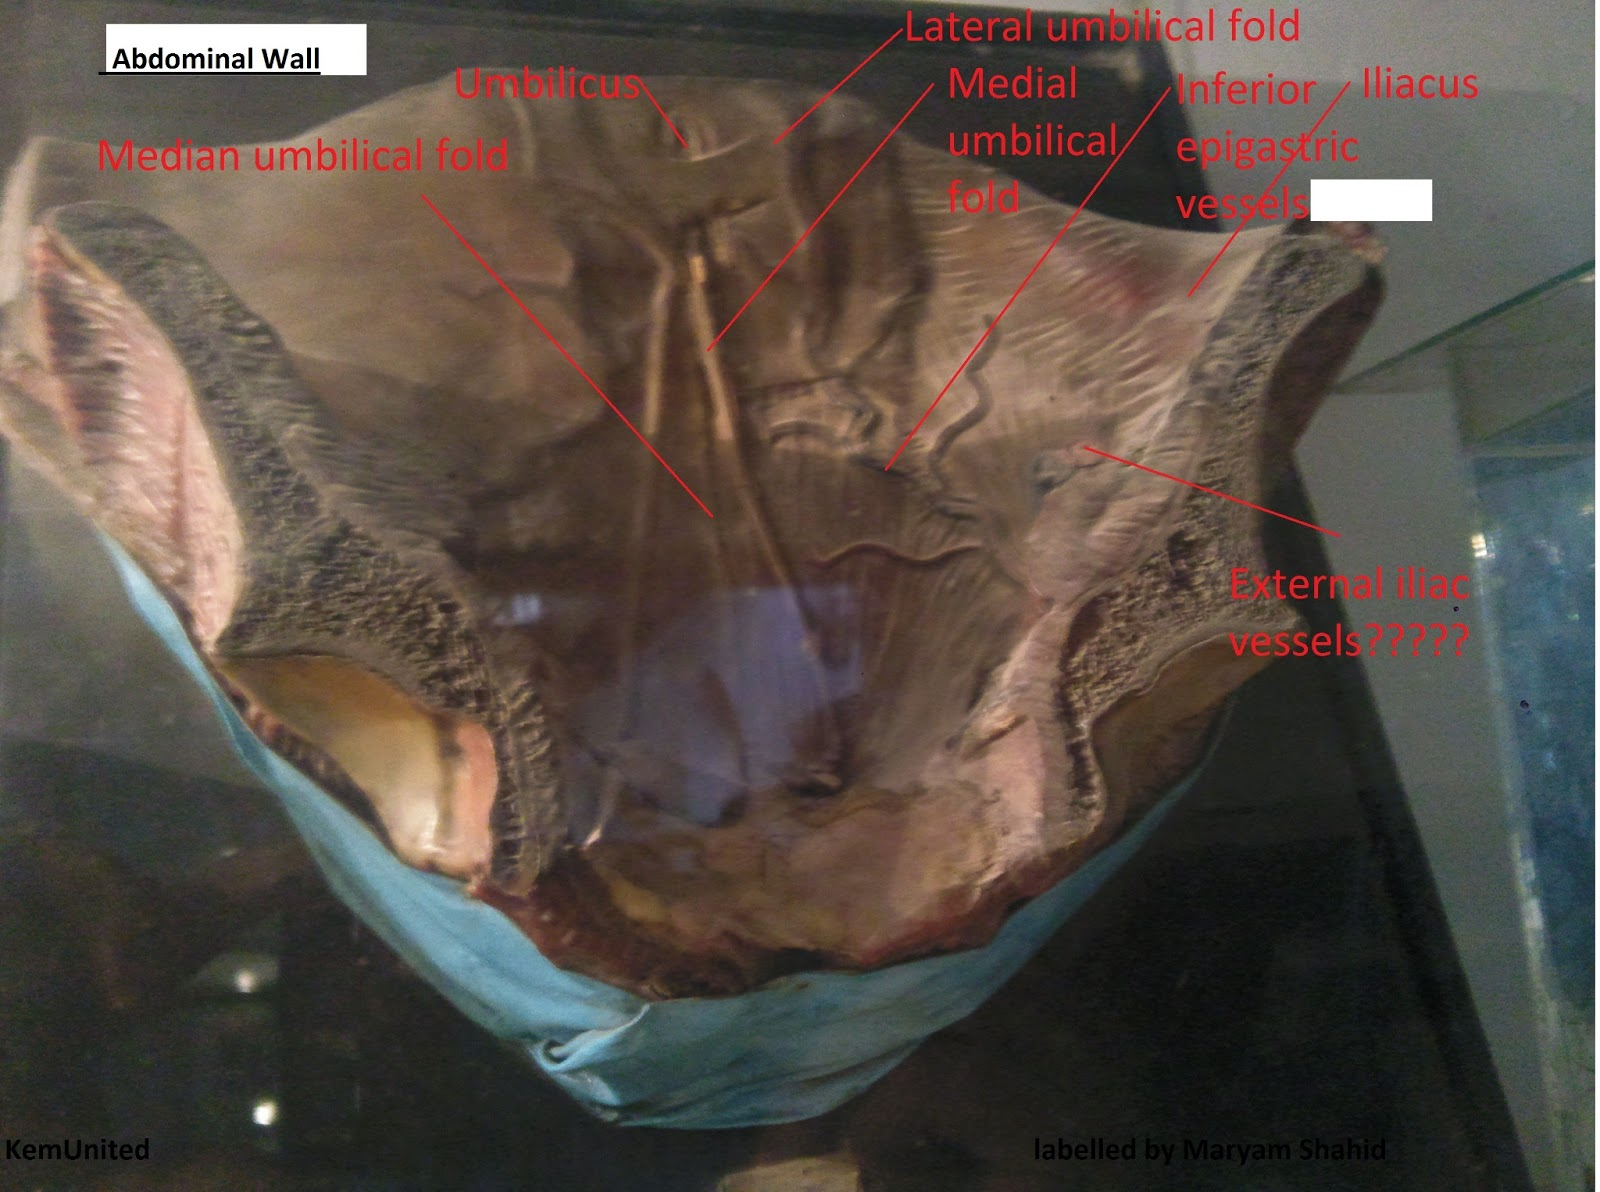 Gross anatomy abdomen